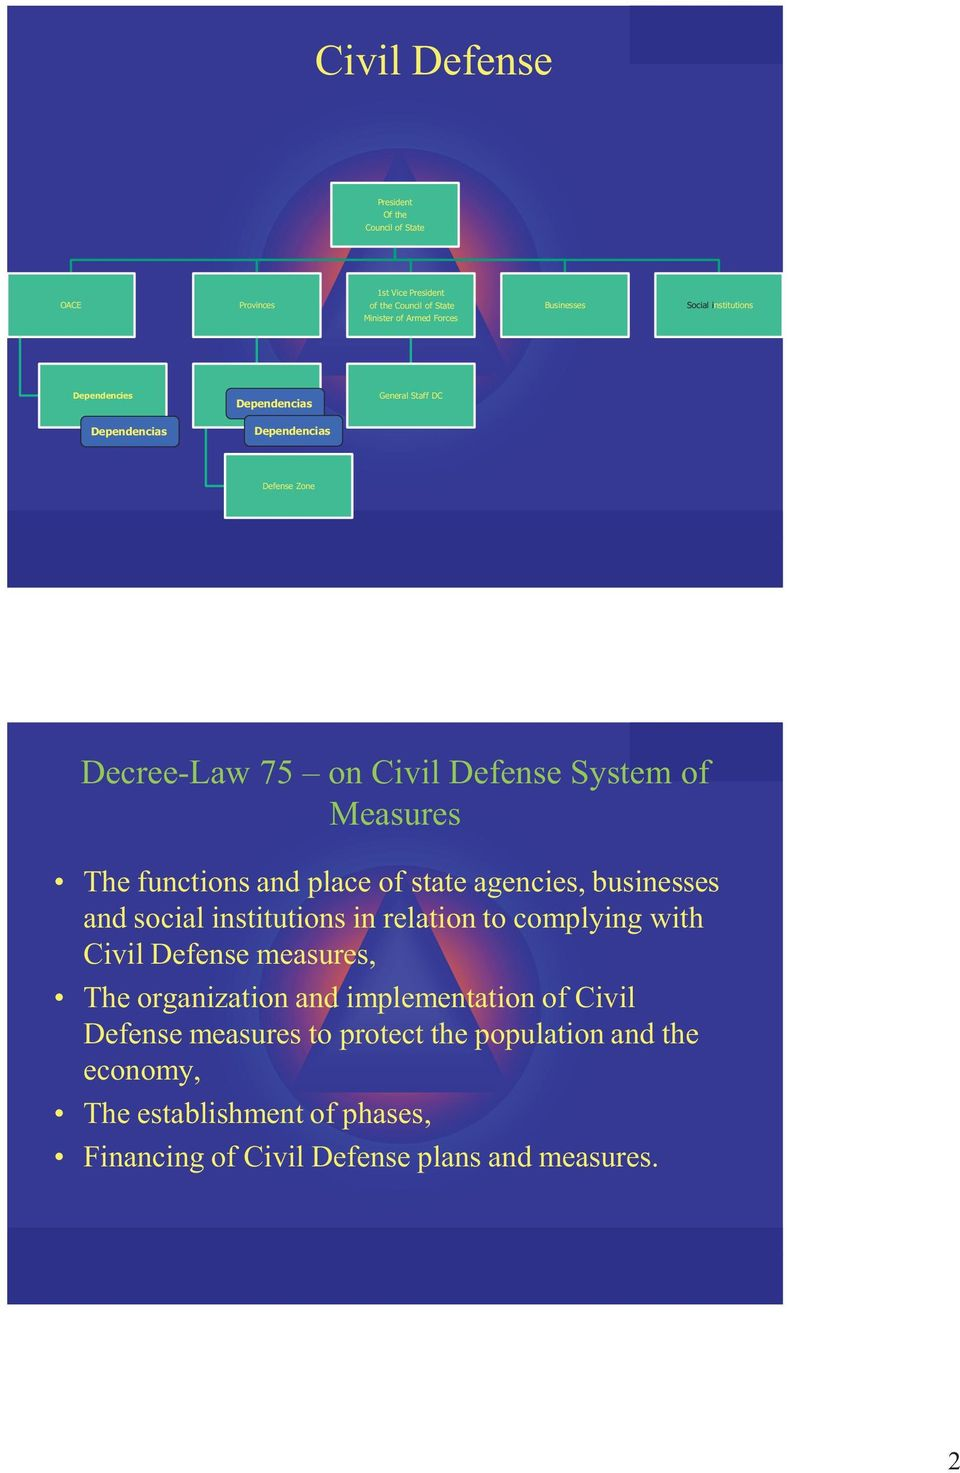 The functions and place of state agencies, businesses and social institutions in relation to complying with Civil Defense measures, The organization and